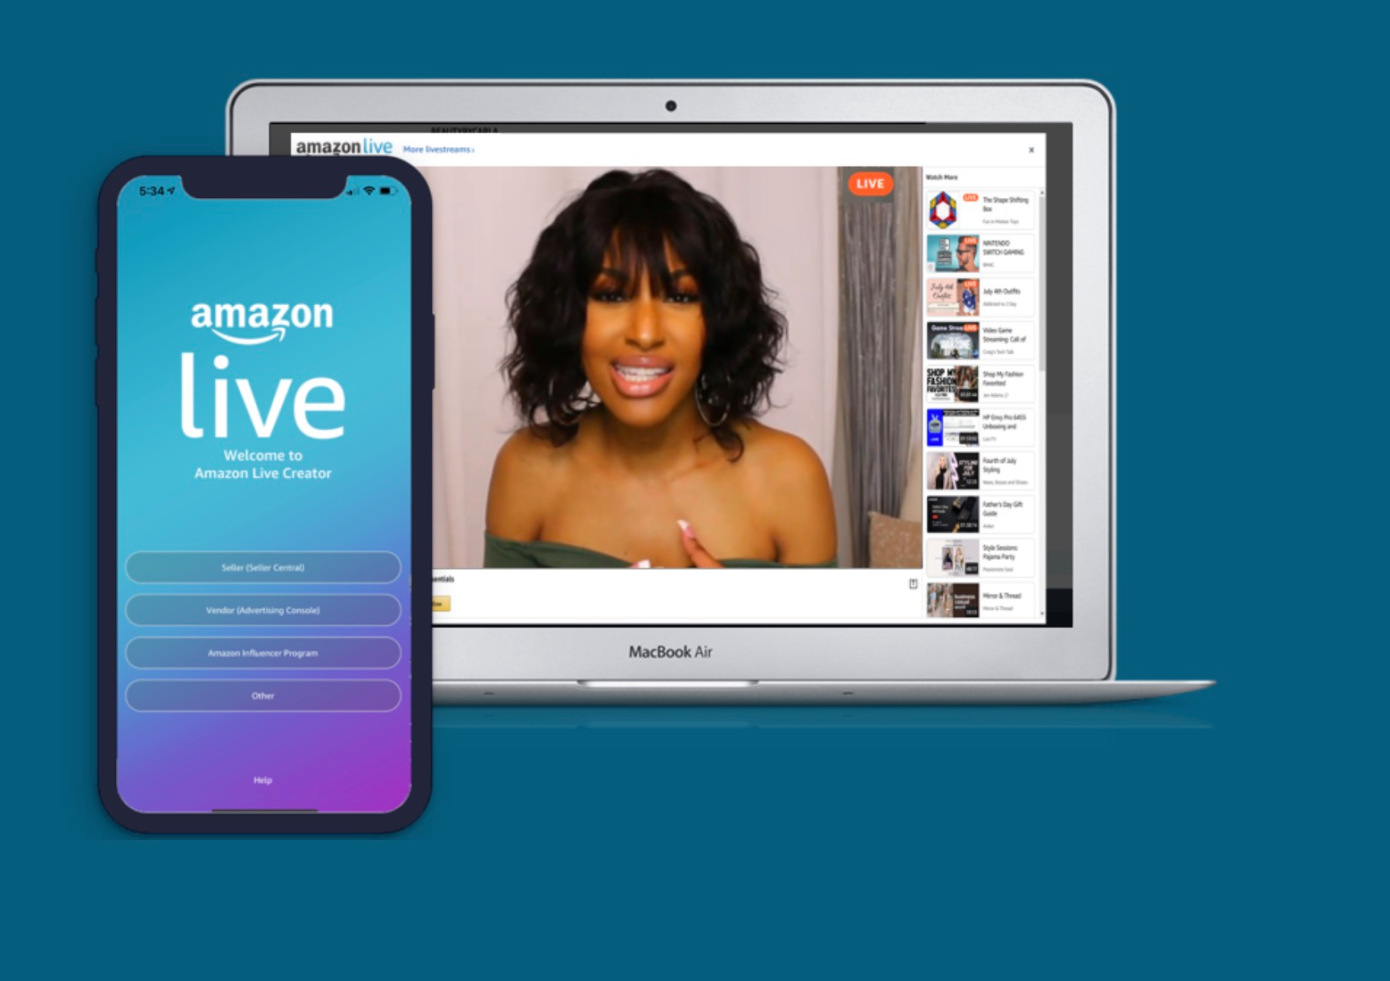 El programa Amazon Influencer se abre para transmitir a Amazon Live